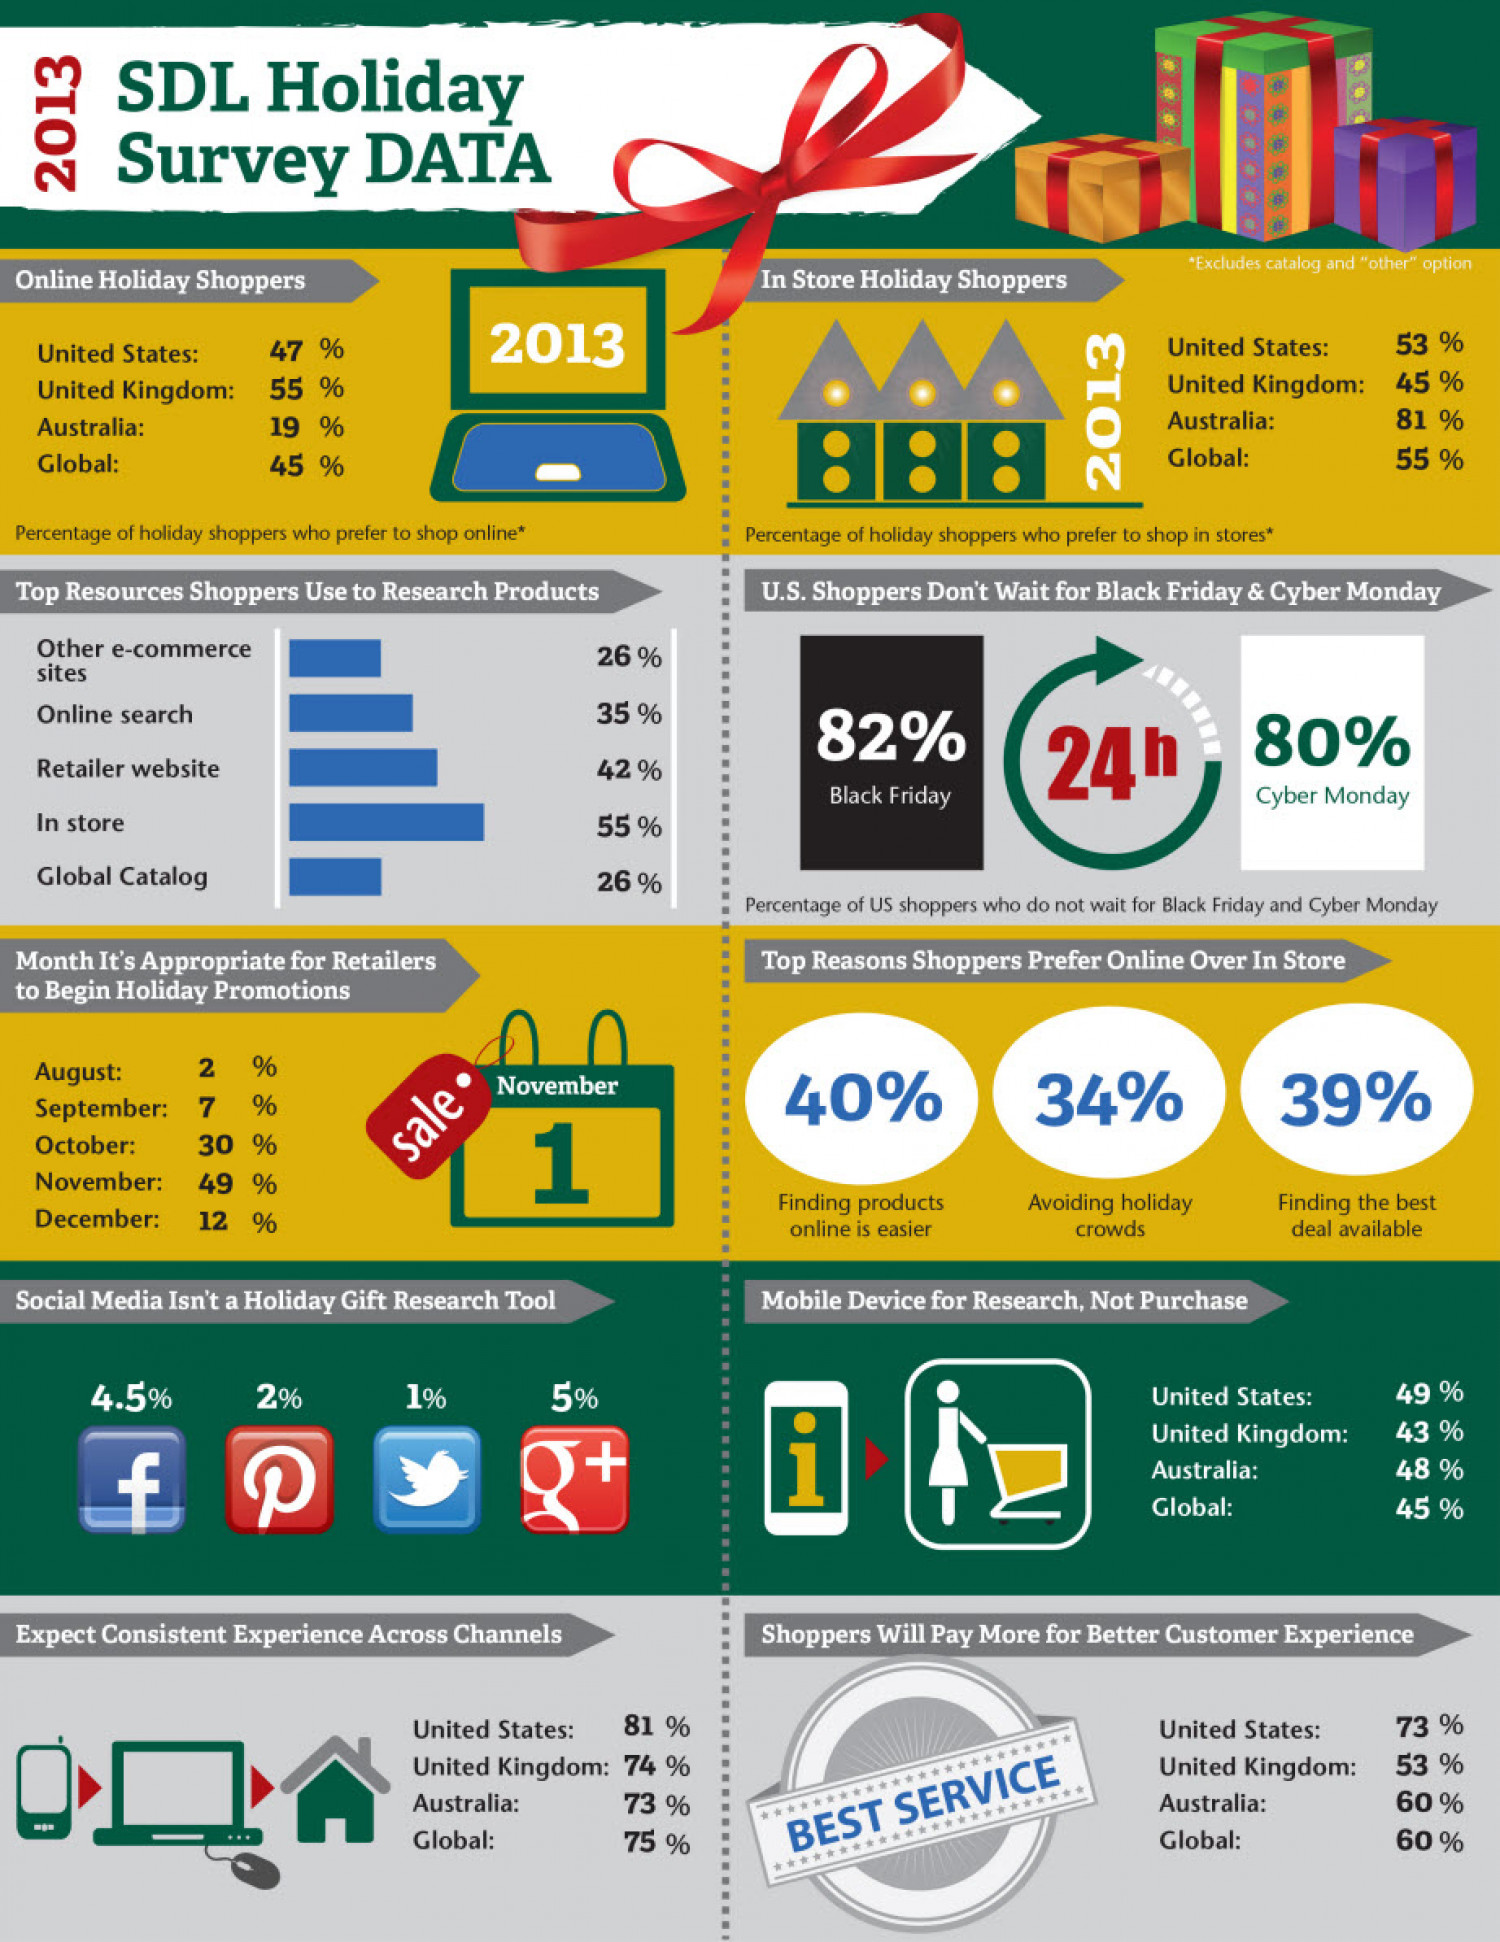 2013 Holiday Shopping Survey Infographic